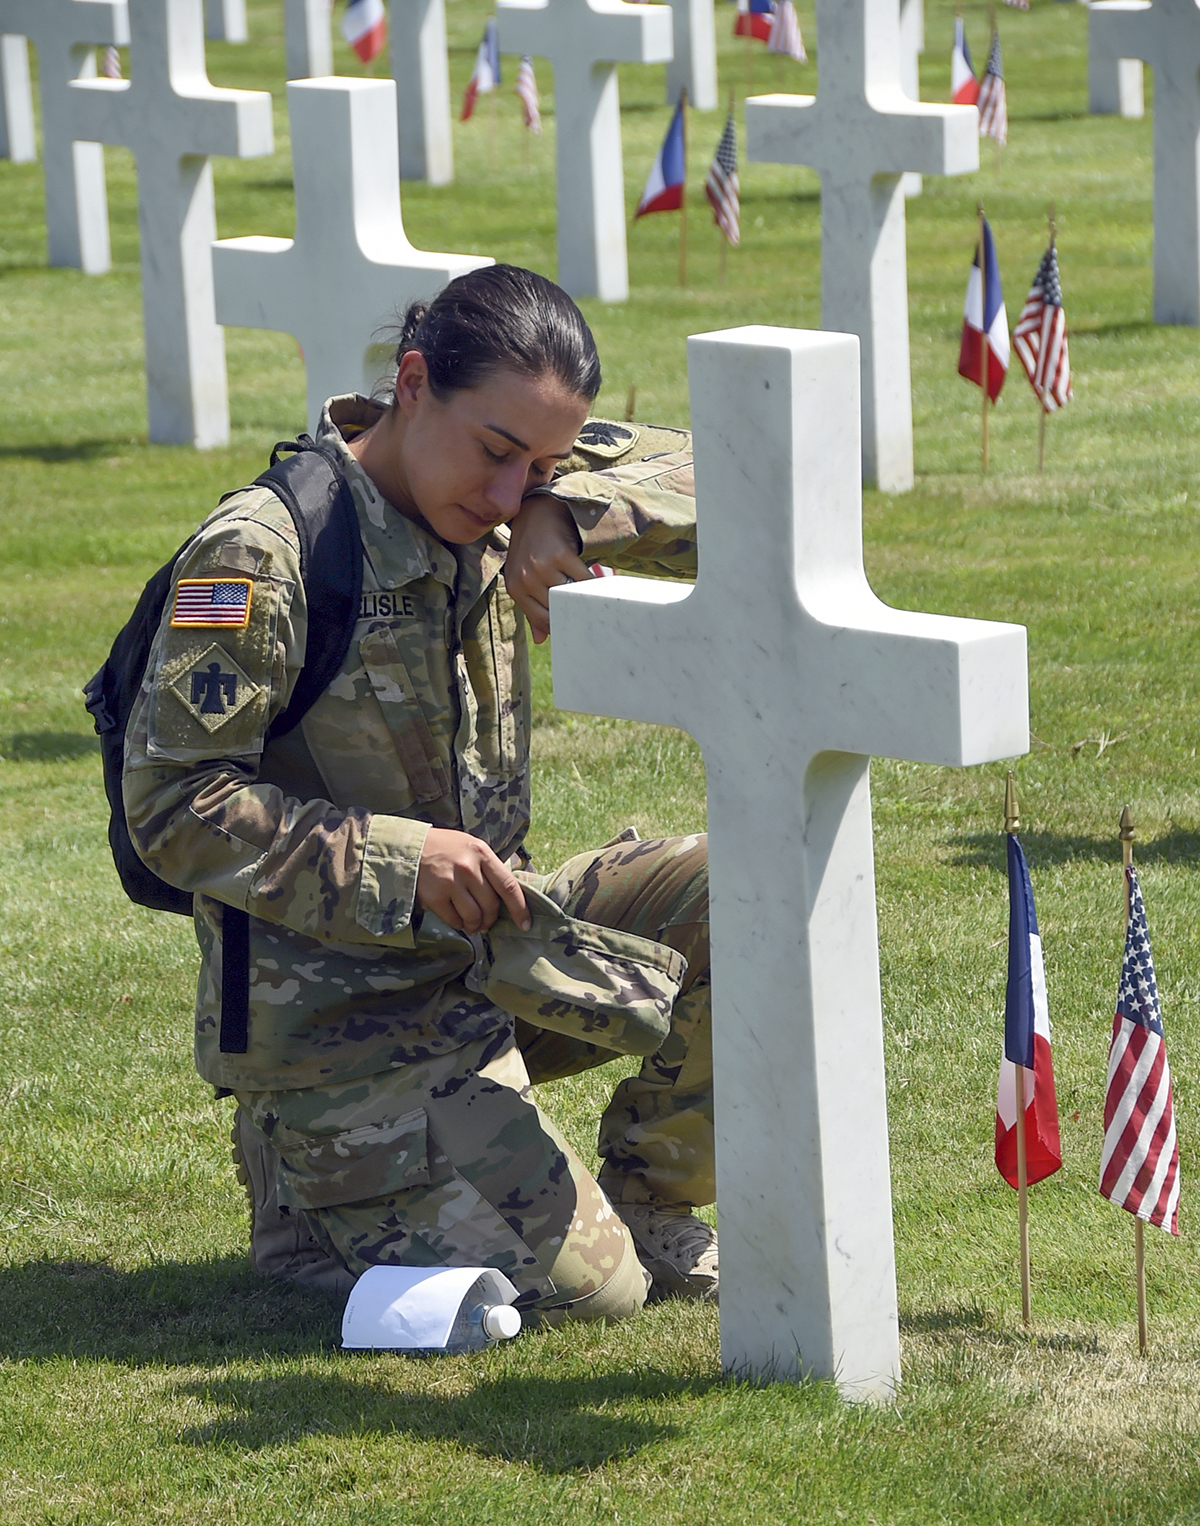 Staff Sgt. Ashley Delisle, Oklahoma Army National Guard state awards manager, wipes tears from her face after discovering the final resting place of her great uncle, Pvt. 1st Class Anton J. Reida, at the Oise-Aisne American Cemetery, Fere-En-Tardenois, France, July 27. Reida was killed during WWI on the Aisne-Marne battlefield, Sept. 1, 1918. Soldiers from units that comprised the 42nd Division during WWI participated in the second phase of a year-long WWI Centennial Commemoration across Northern France. (Sgt. Brian Schroeder/Oklahoma National Guard)